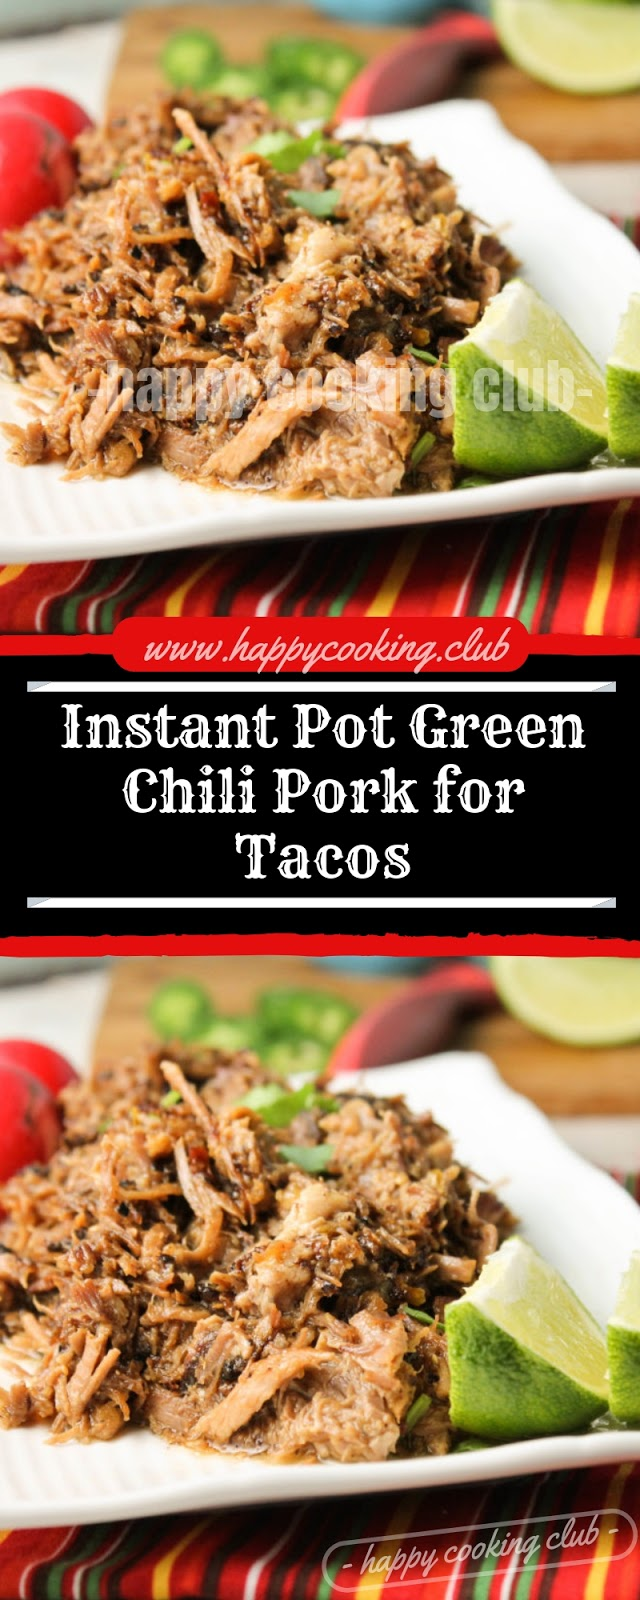 Instant Pot Green Chili Pork for Tacos